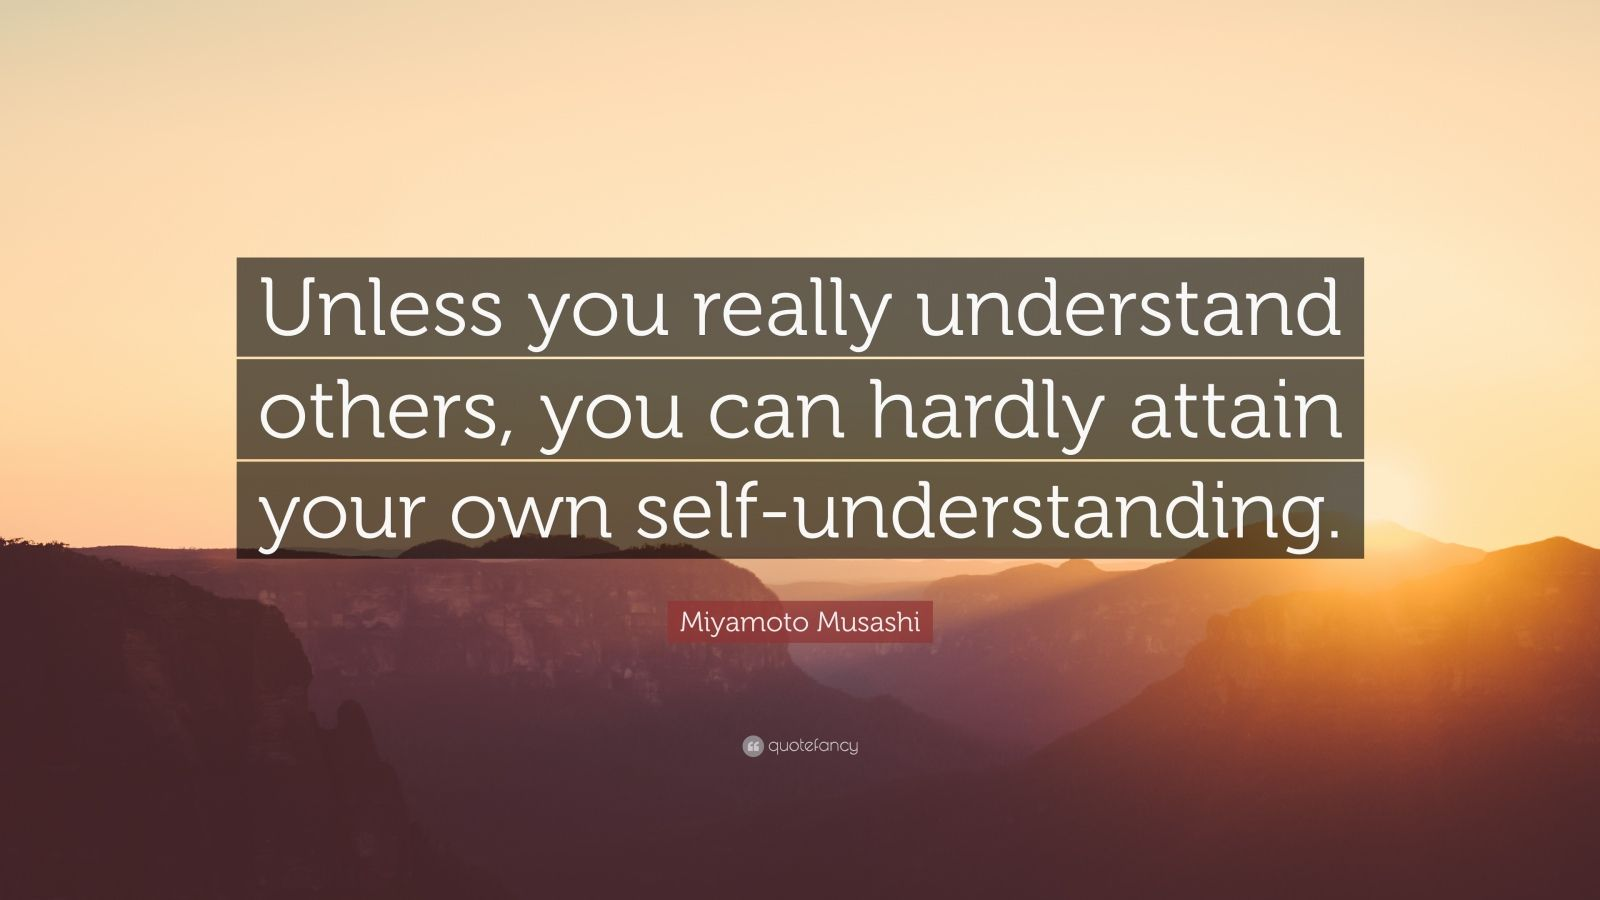 a discussion of understanding your own self Again, you check those that seem most to apply to you and then confirm your self-understanding the ability to understand one's own actions.